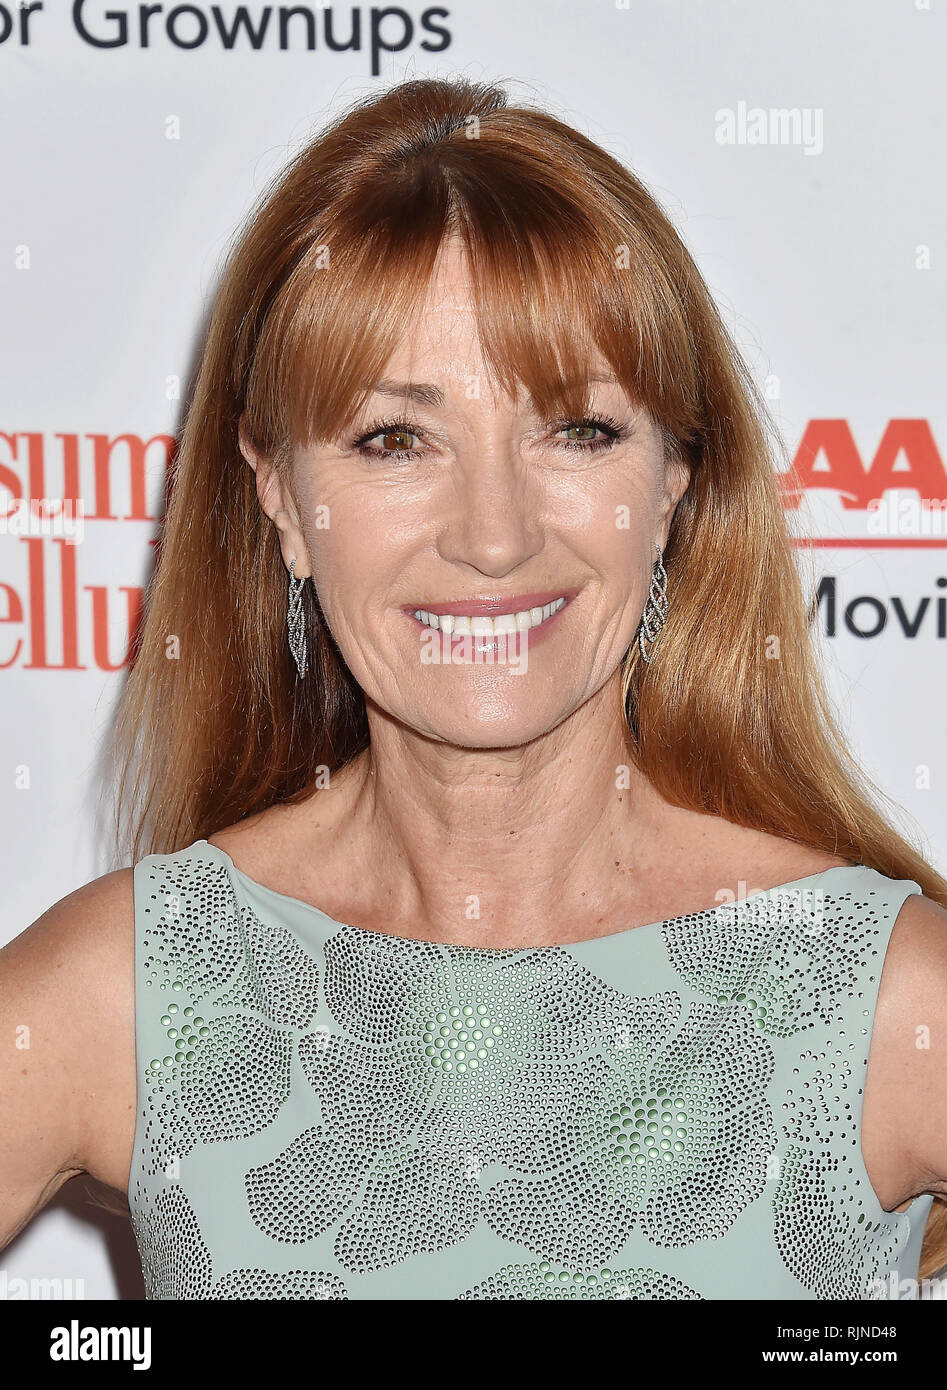 JANE SEYMOUR, English film actress at the 18th Annual AARP The Magazine's Movies For Grownups Awards at the Beverly Wilshire Four Seasons Hotel on February 04, 2019 in Beverly Hills, California. Photo: Jeffrey Mayer - Stock Image